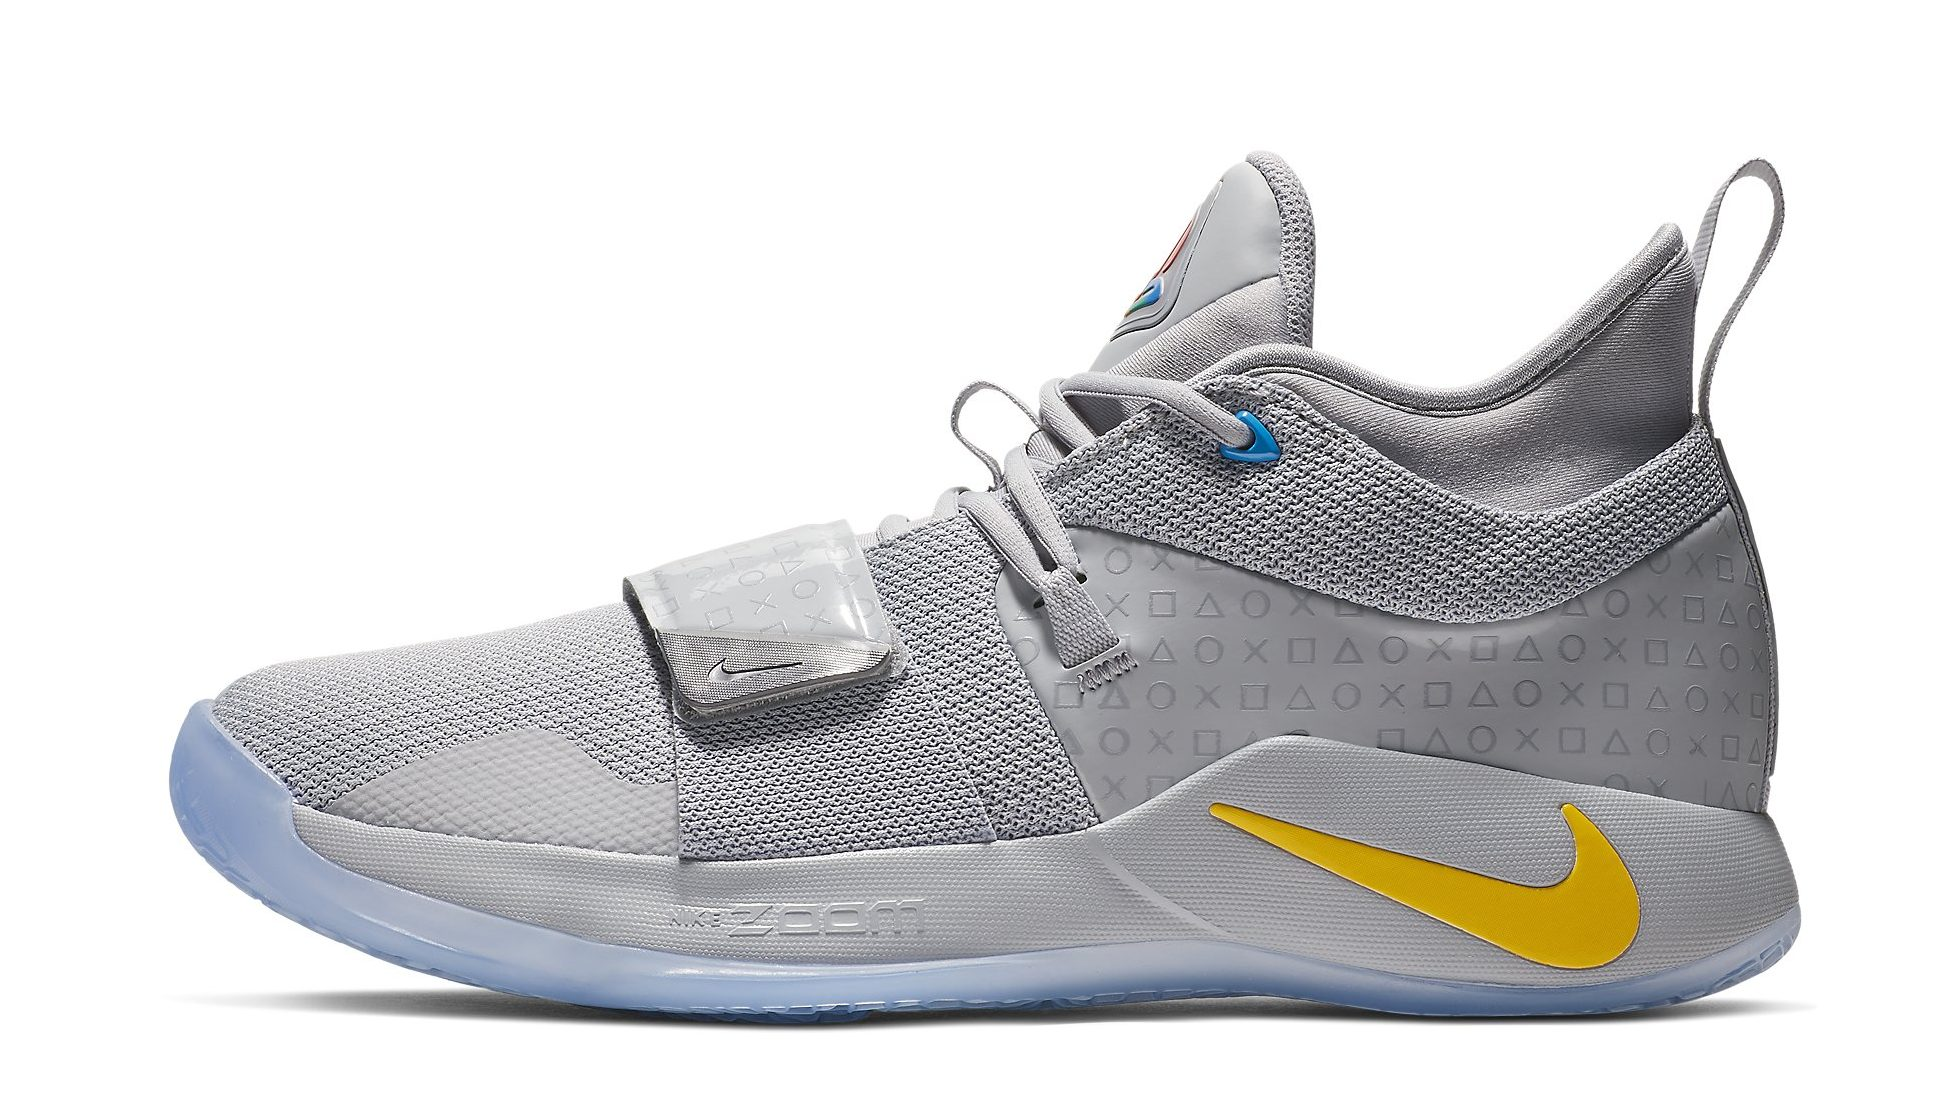 The PlayStation x Nike PG 2.5 Sneaker